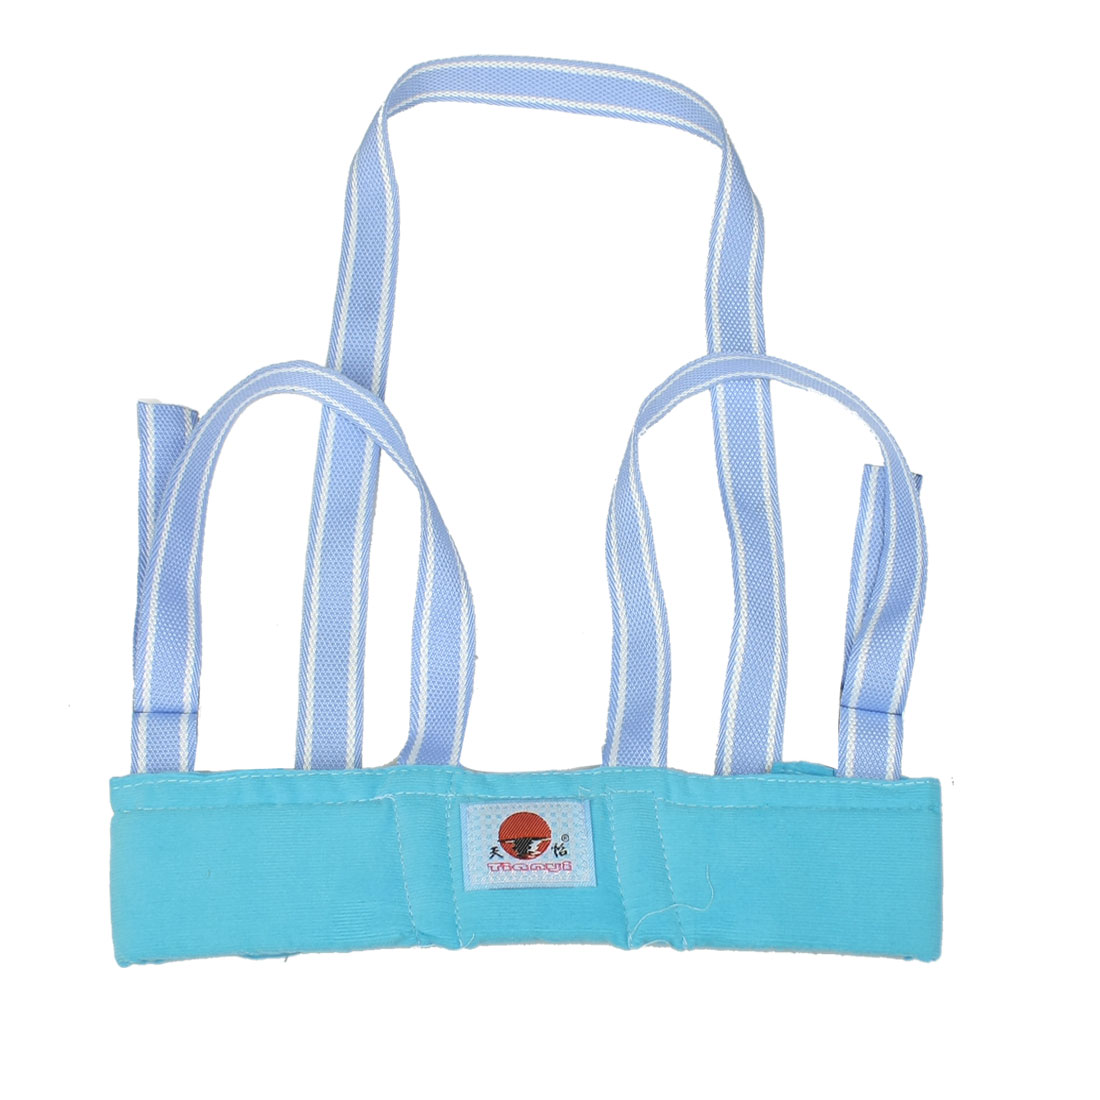 Toddler Safety Harness Adjustable Belt Walking Walker Assistant Sky Blue